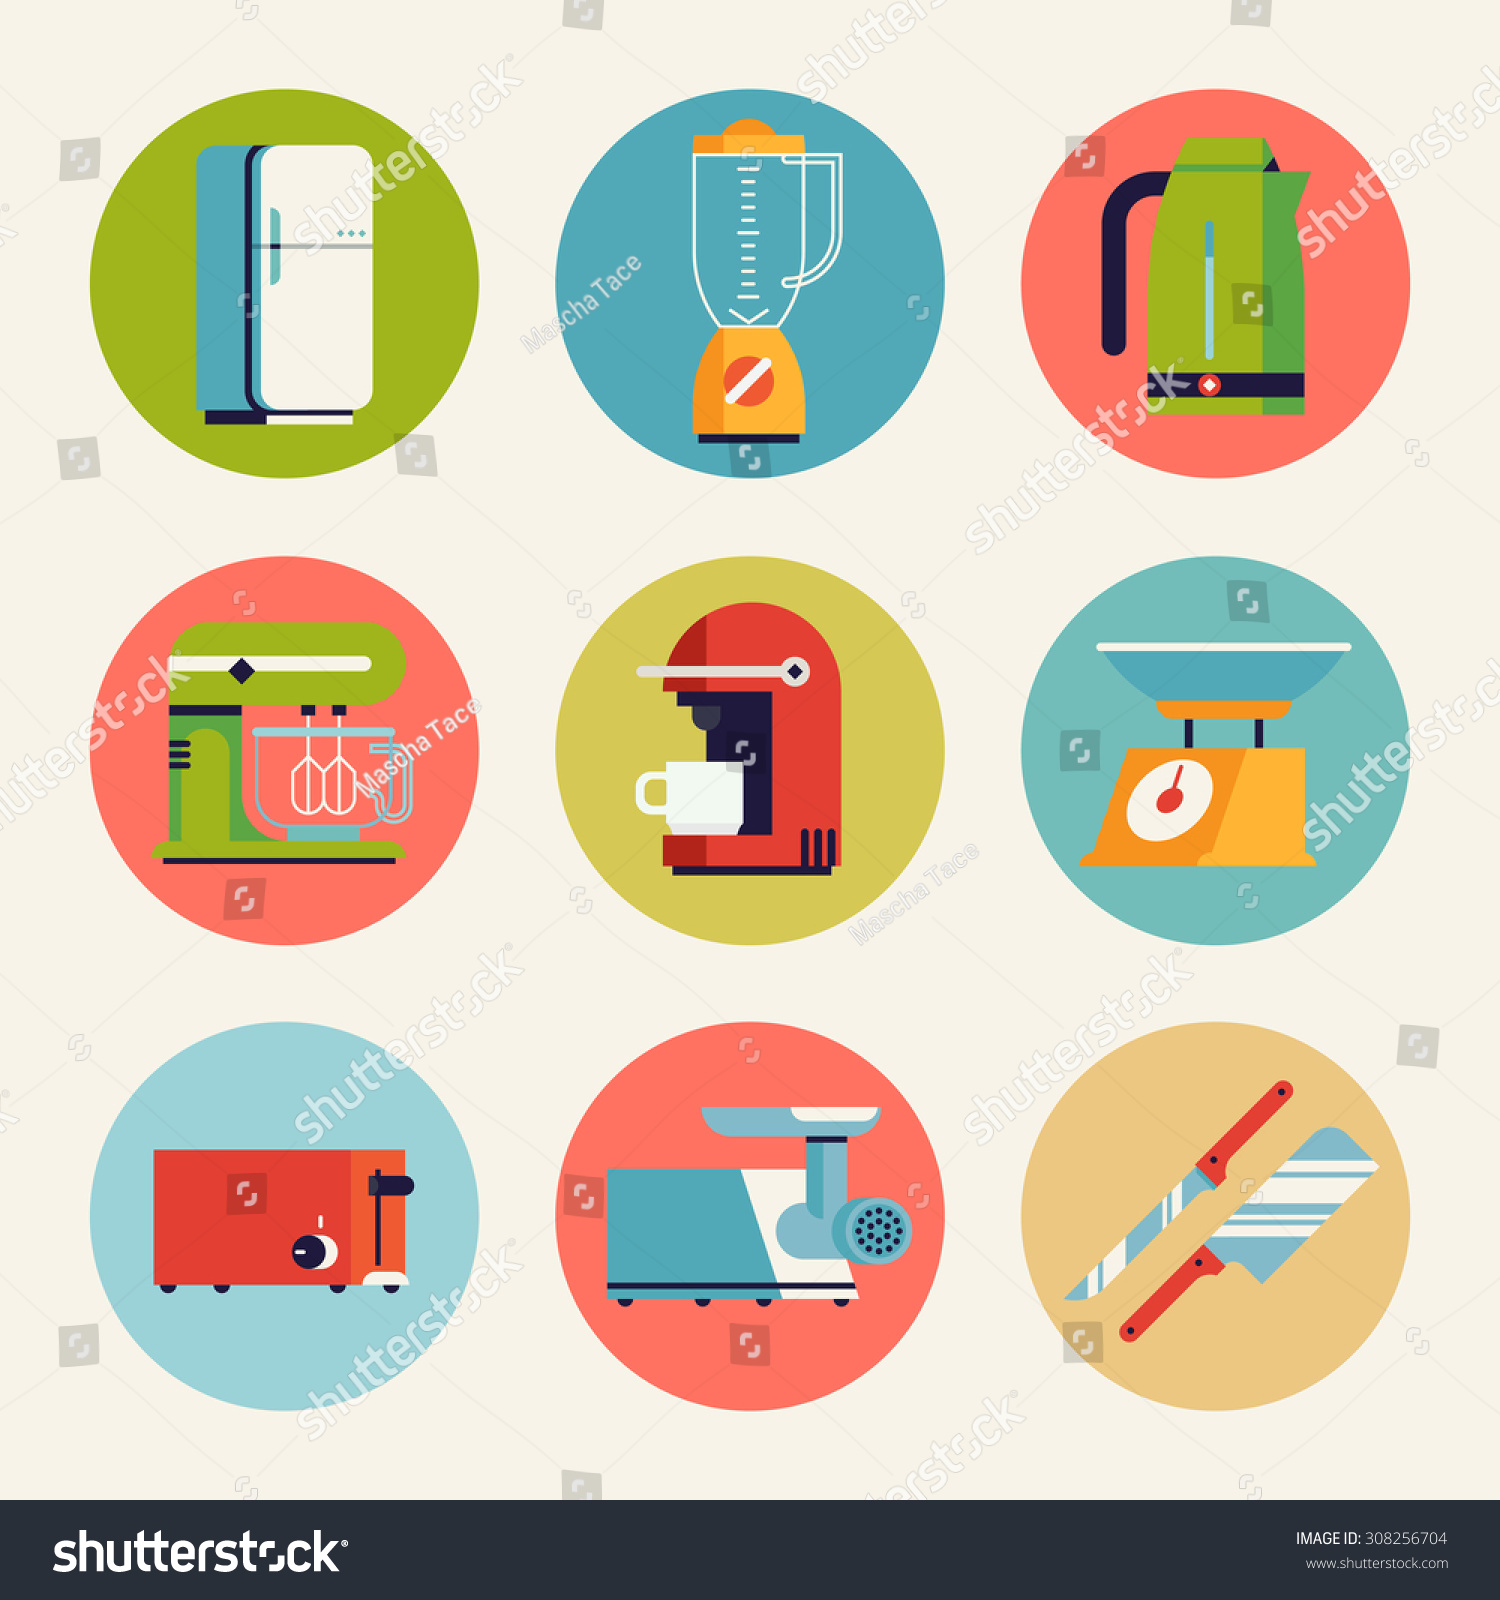 Set Cool Vector Home Kitchen Appliances Stock Vector Royalty Free 308256704,700 Square Feet House Plans